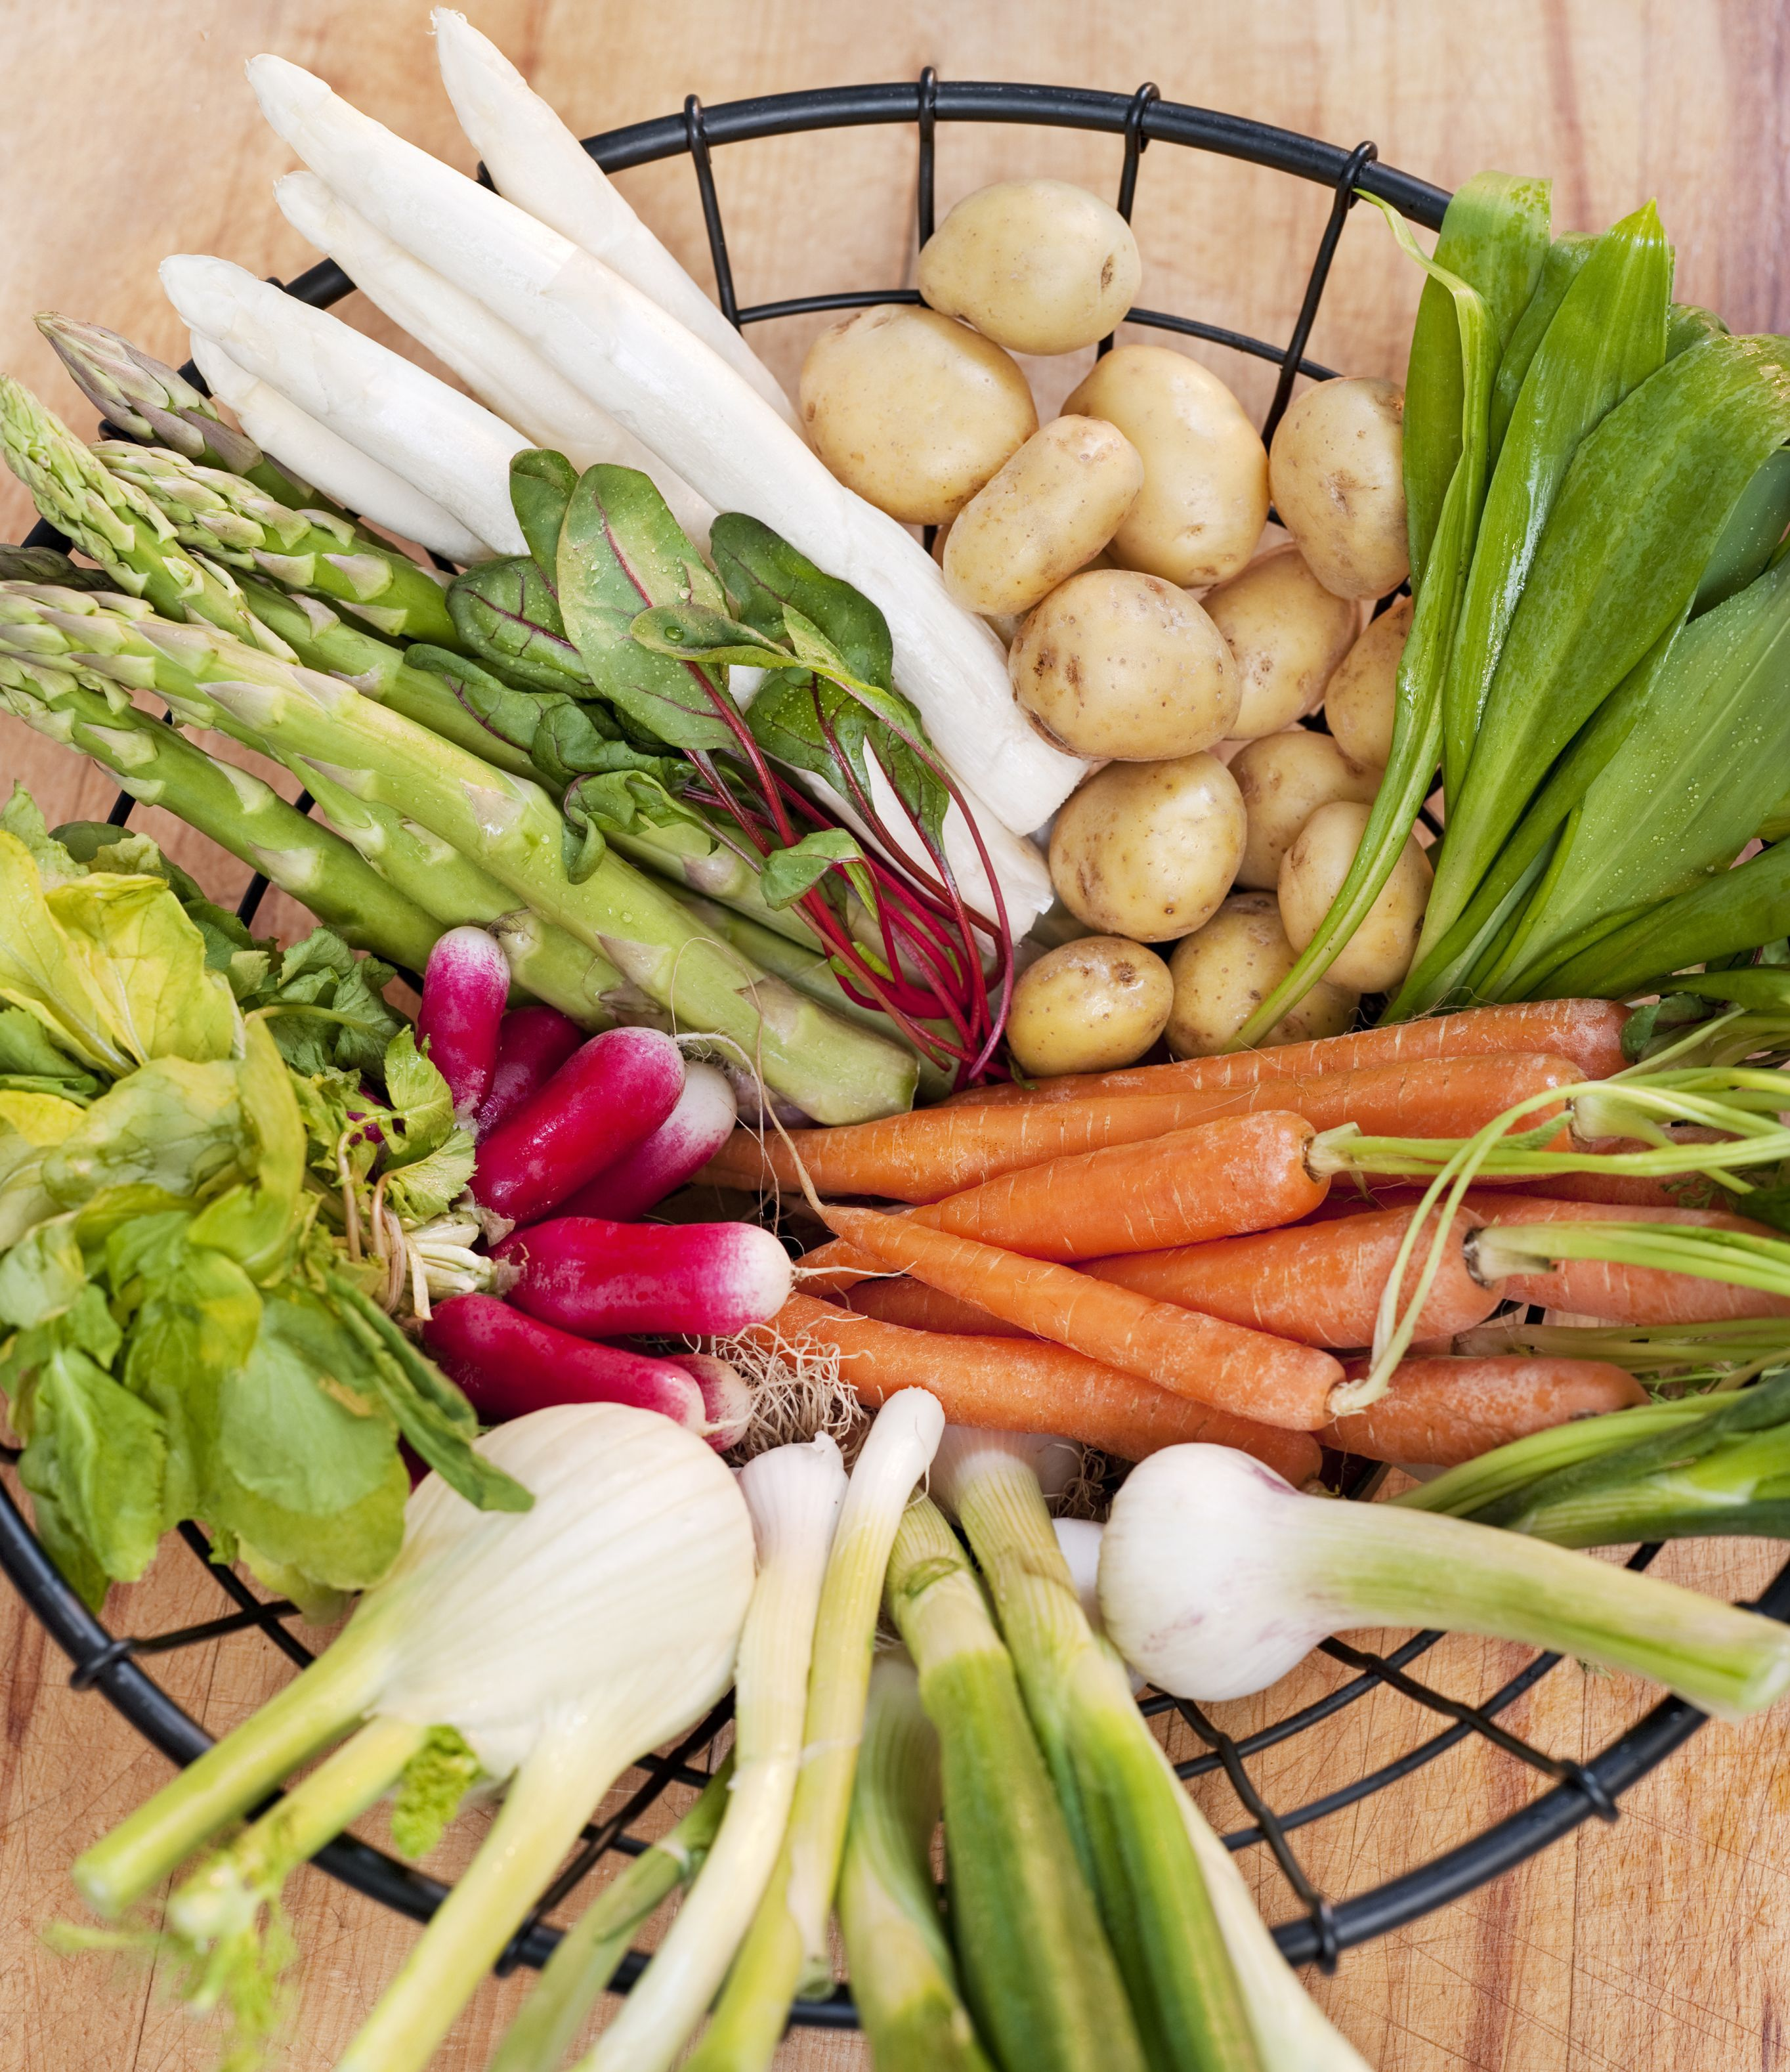 A List of Starchy Vegetables and Tips for Enjoying Them